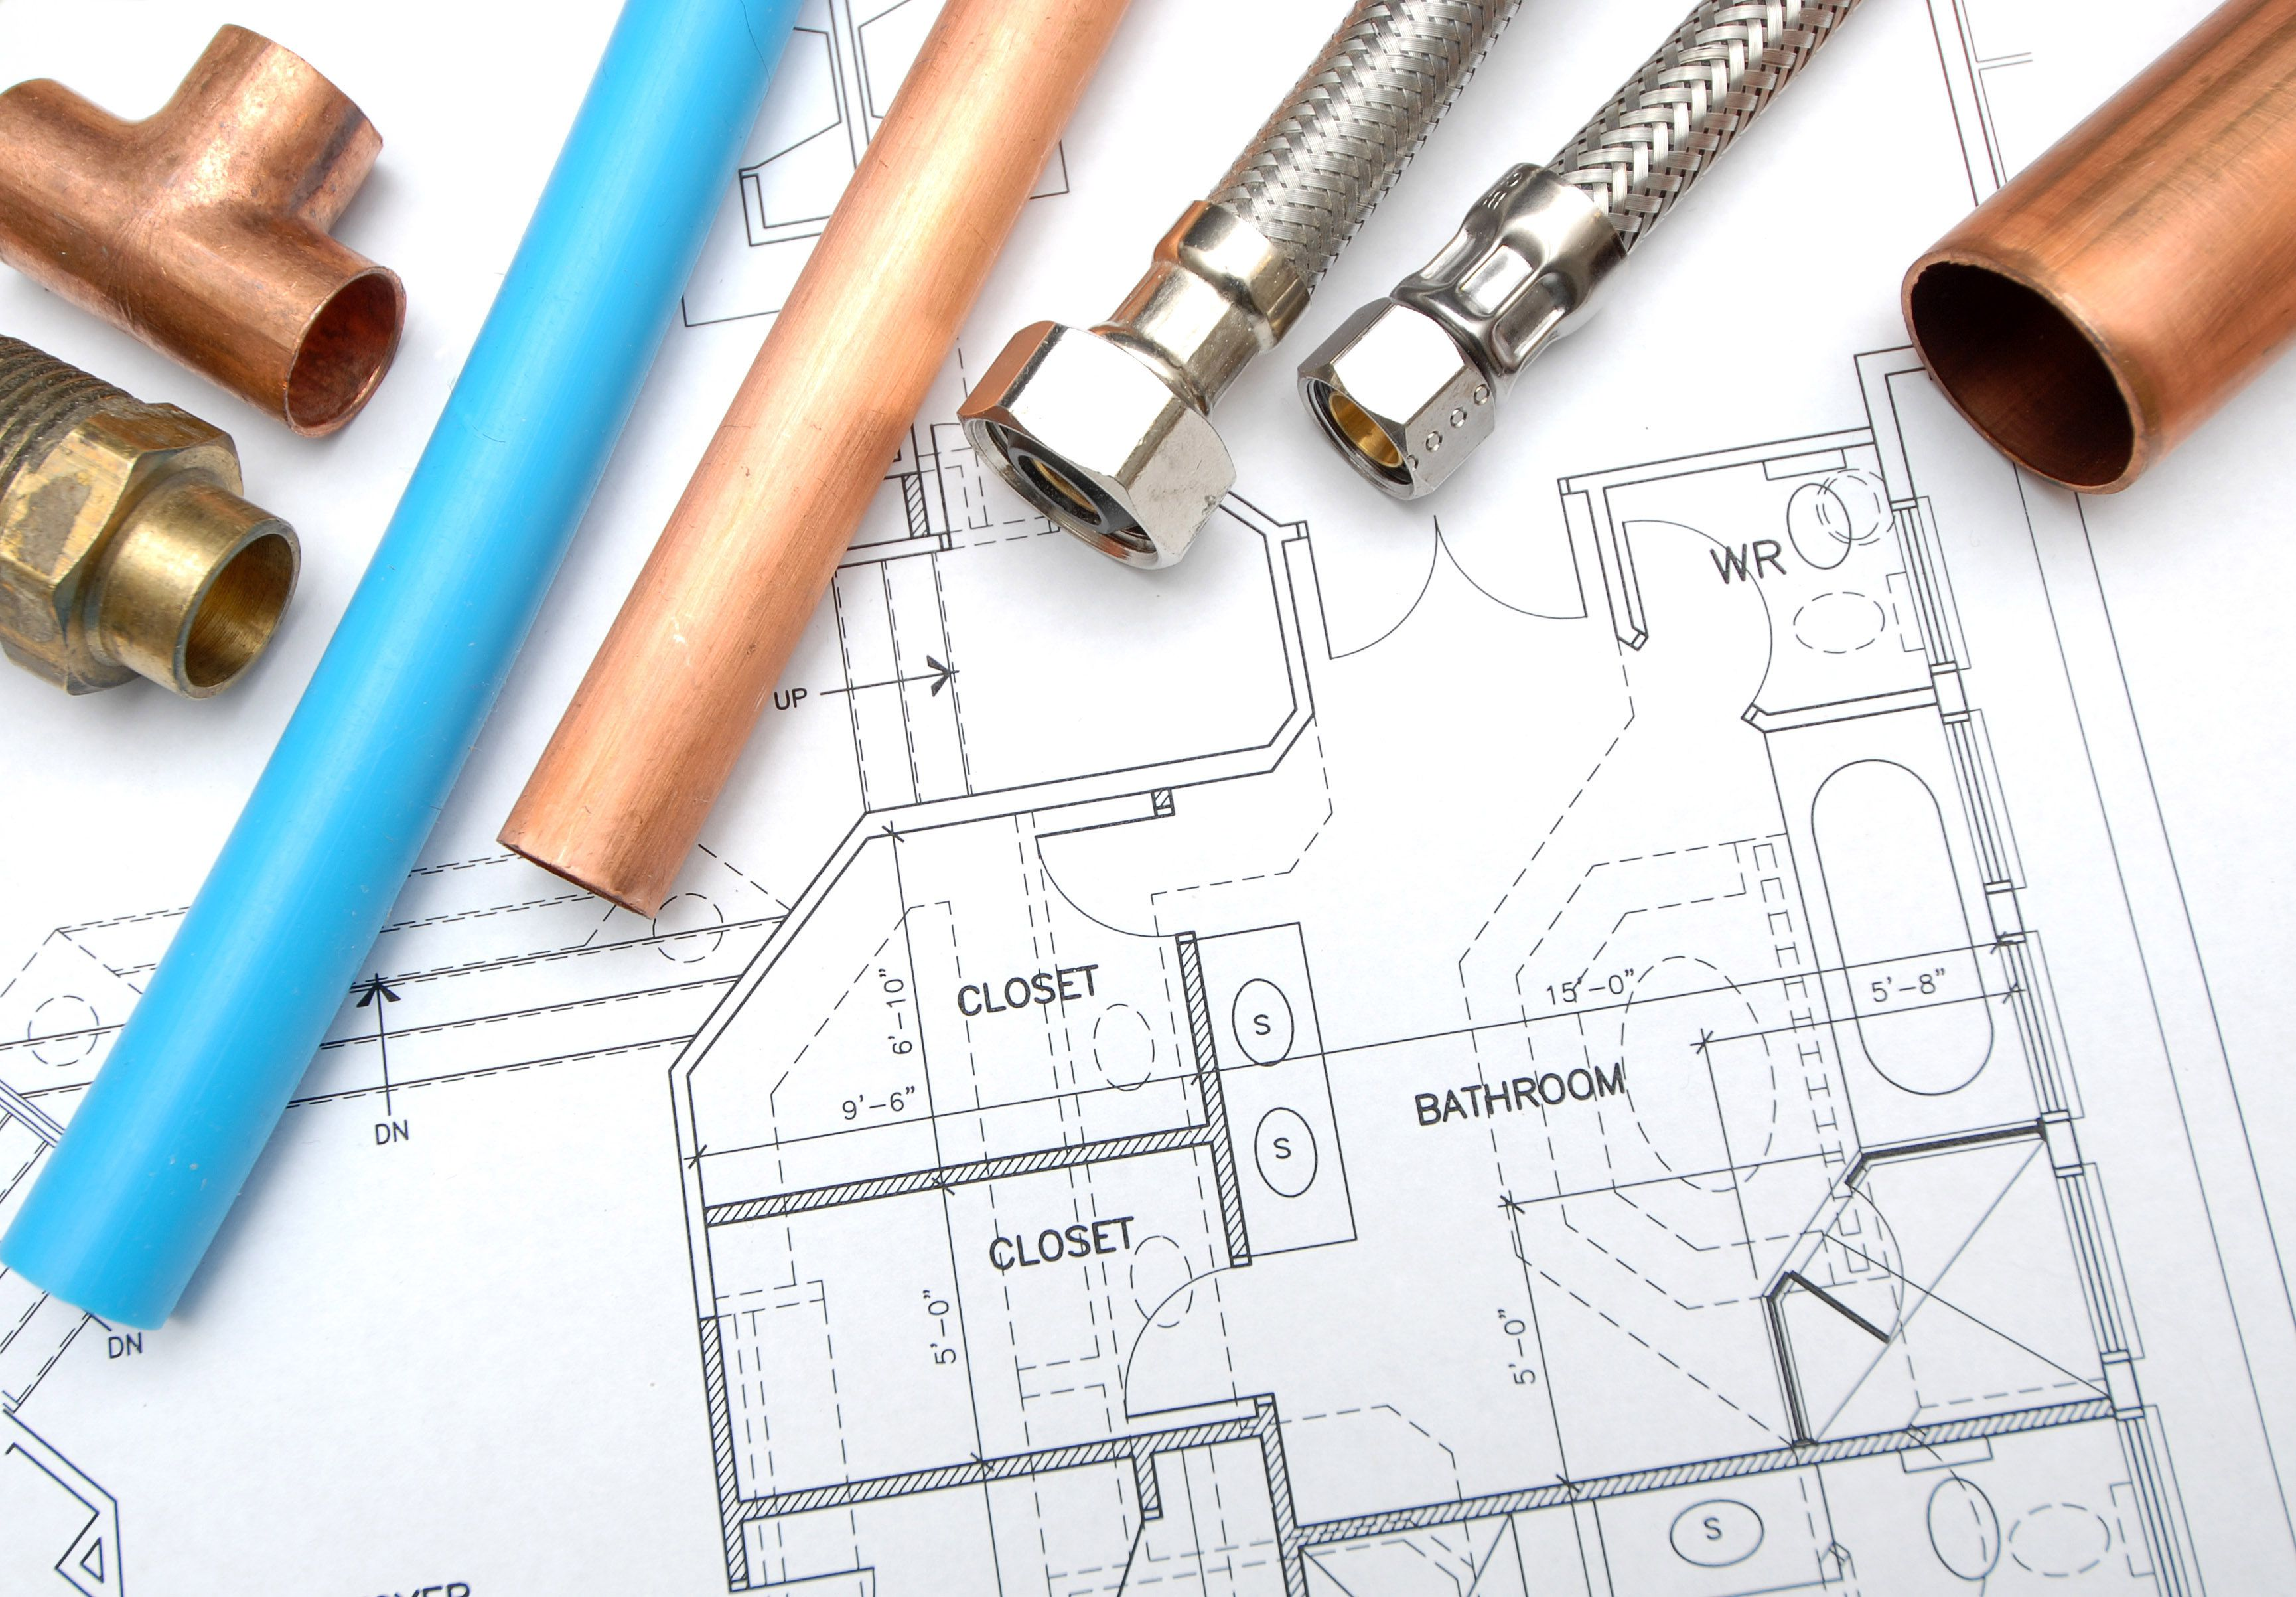 Plumbing Dimensions For The Bathroom Piping Layout Tips